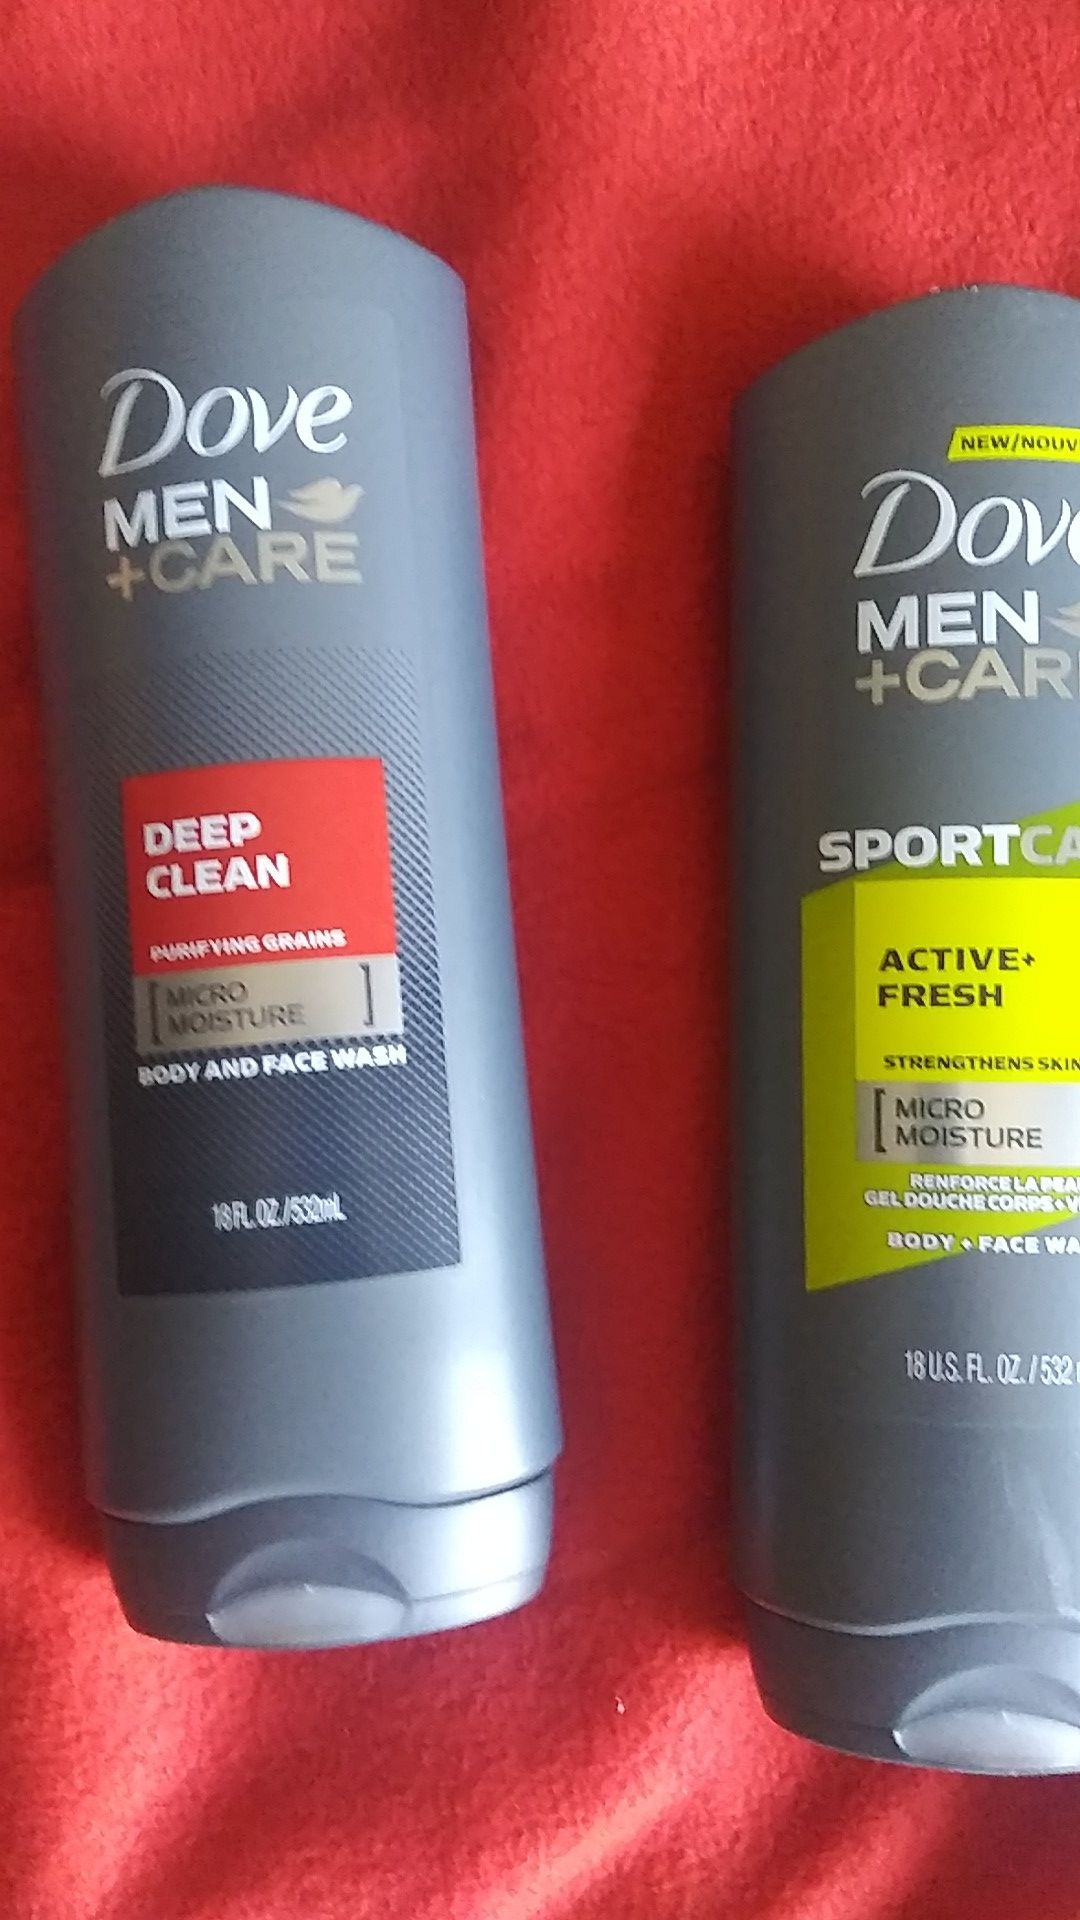 Dove body wash dove deoderant/old spice body wash and deoderant